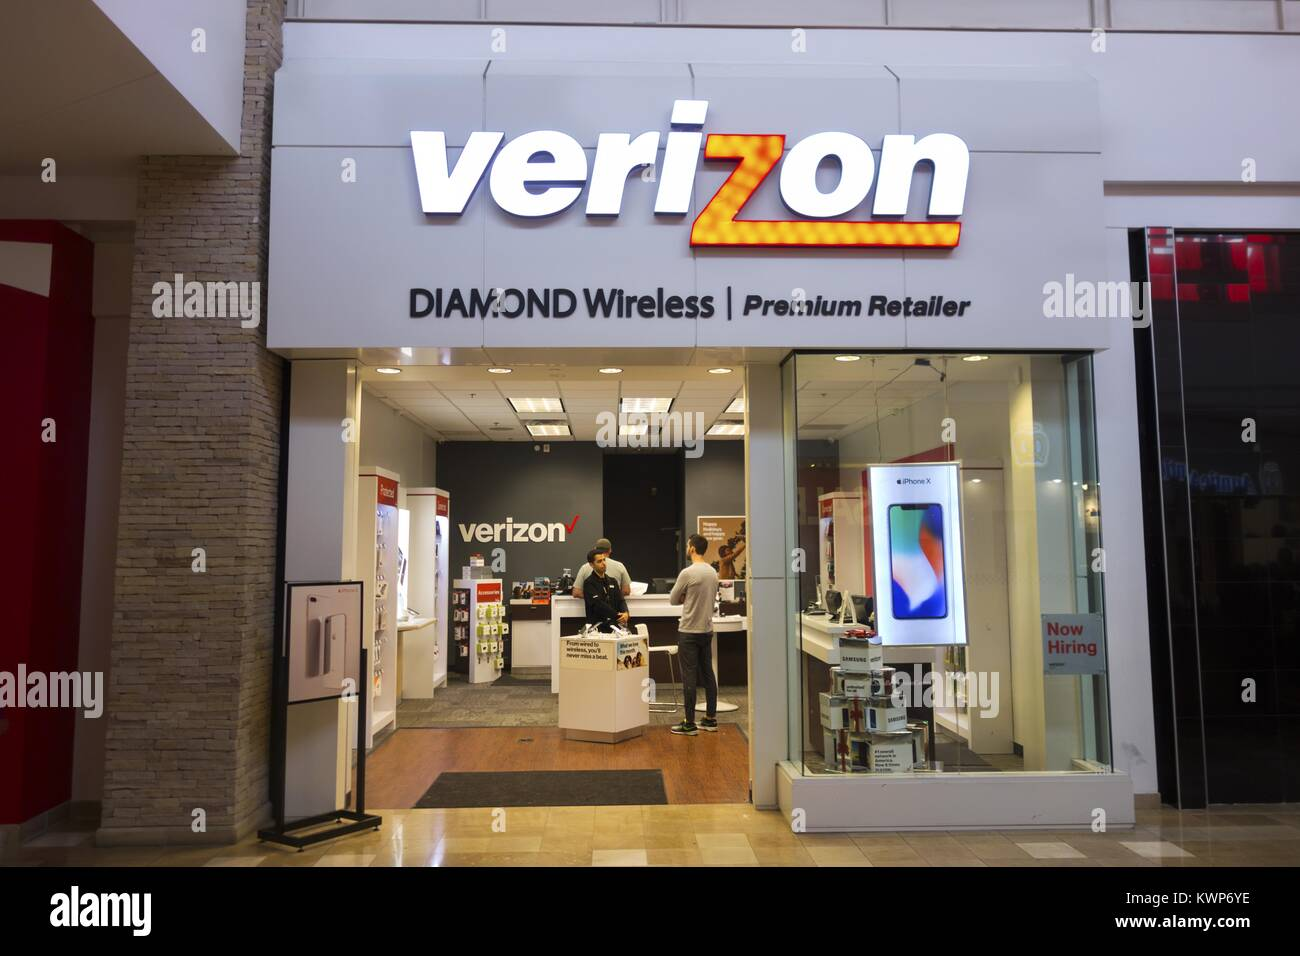 Verizon Wireless Store Front In Superstition Shopping Mall